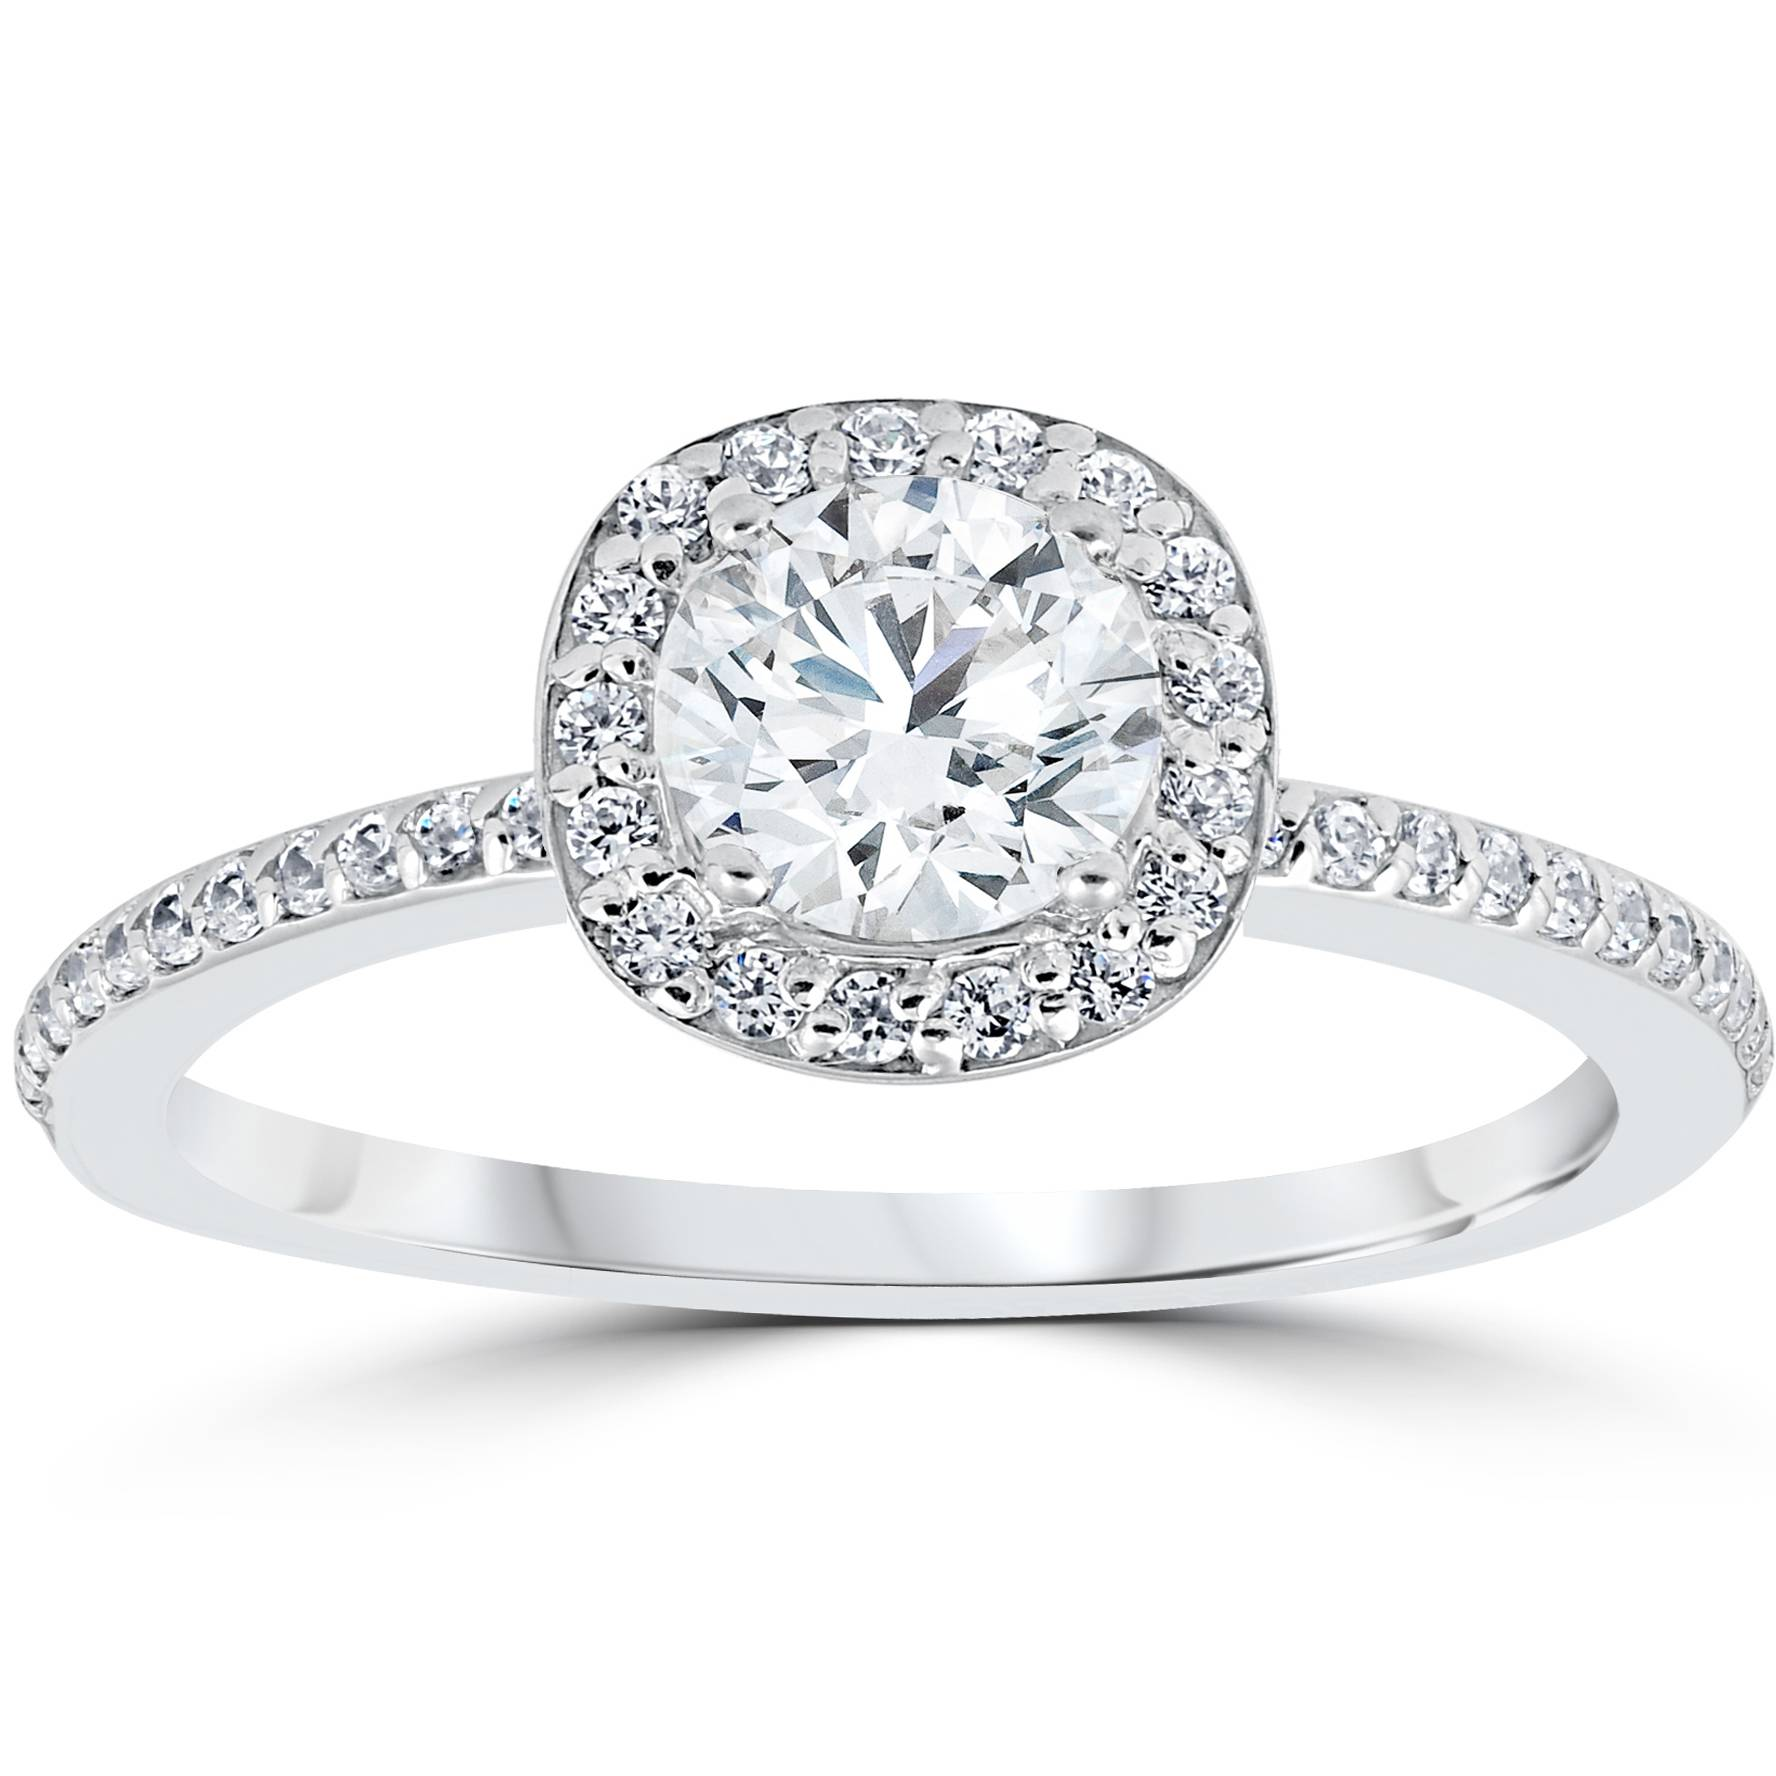 1ct engagement ring cushion halo vintage solitaire